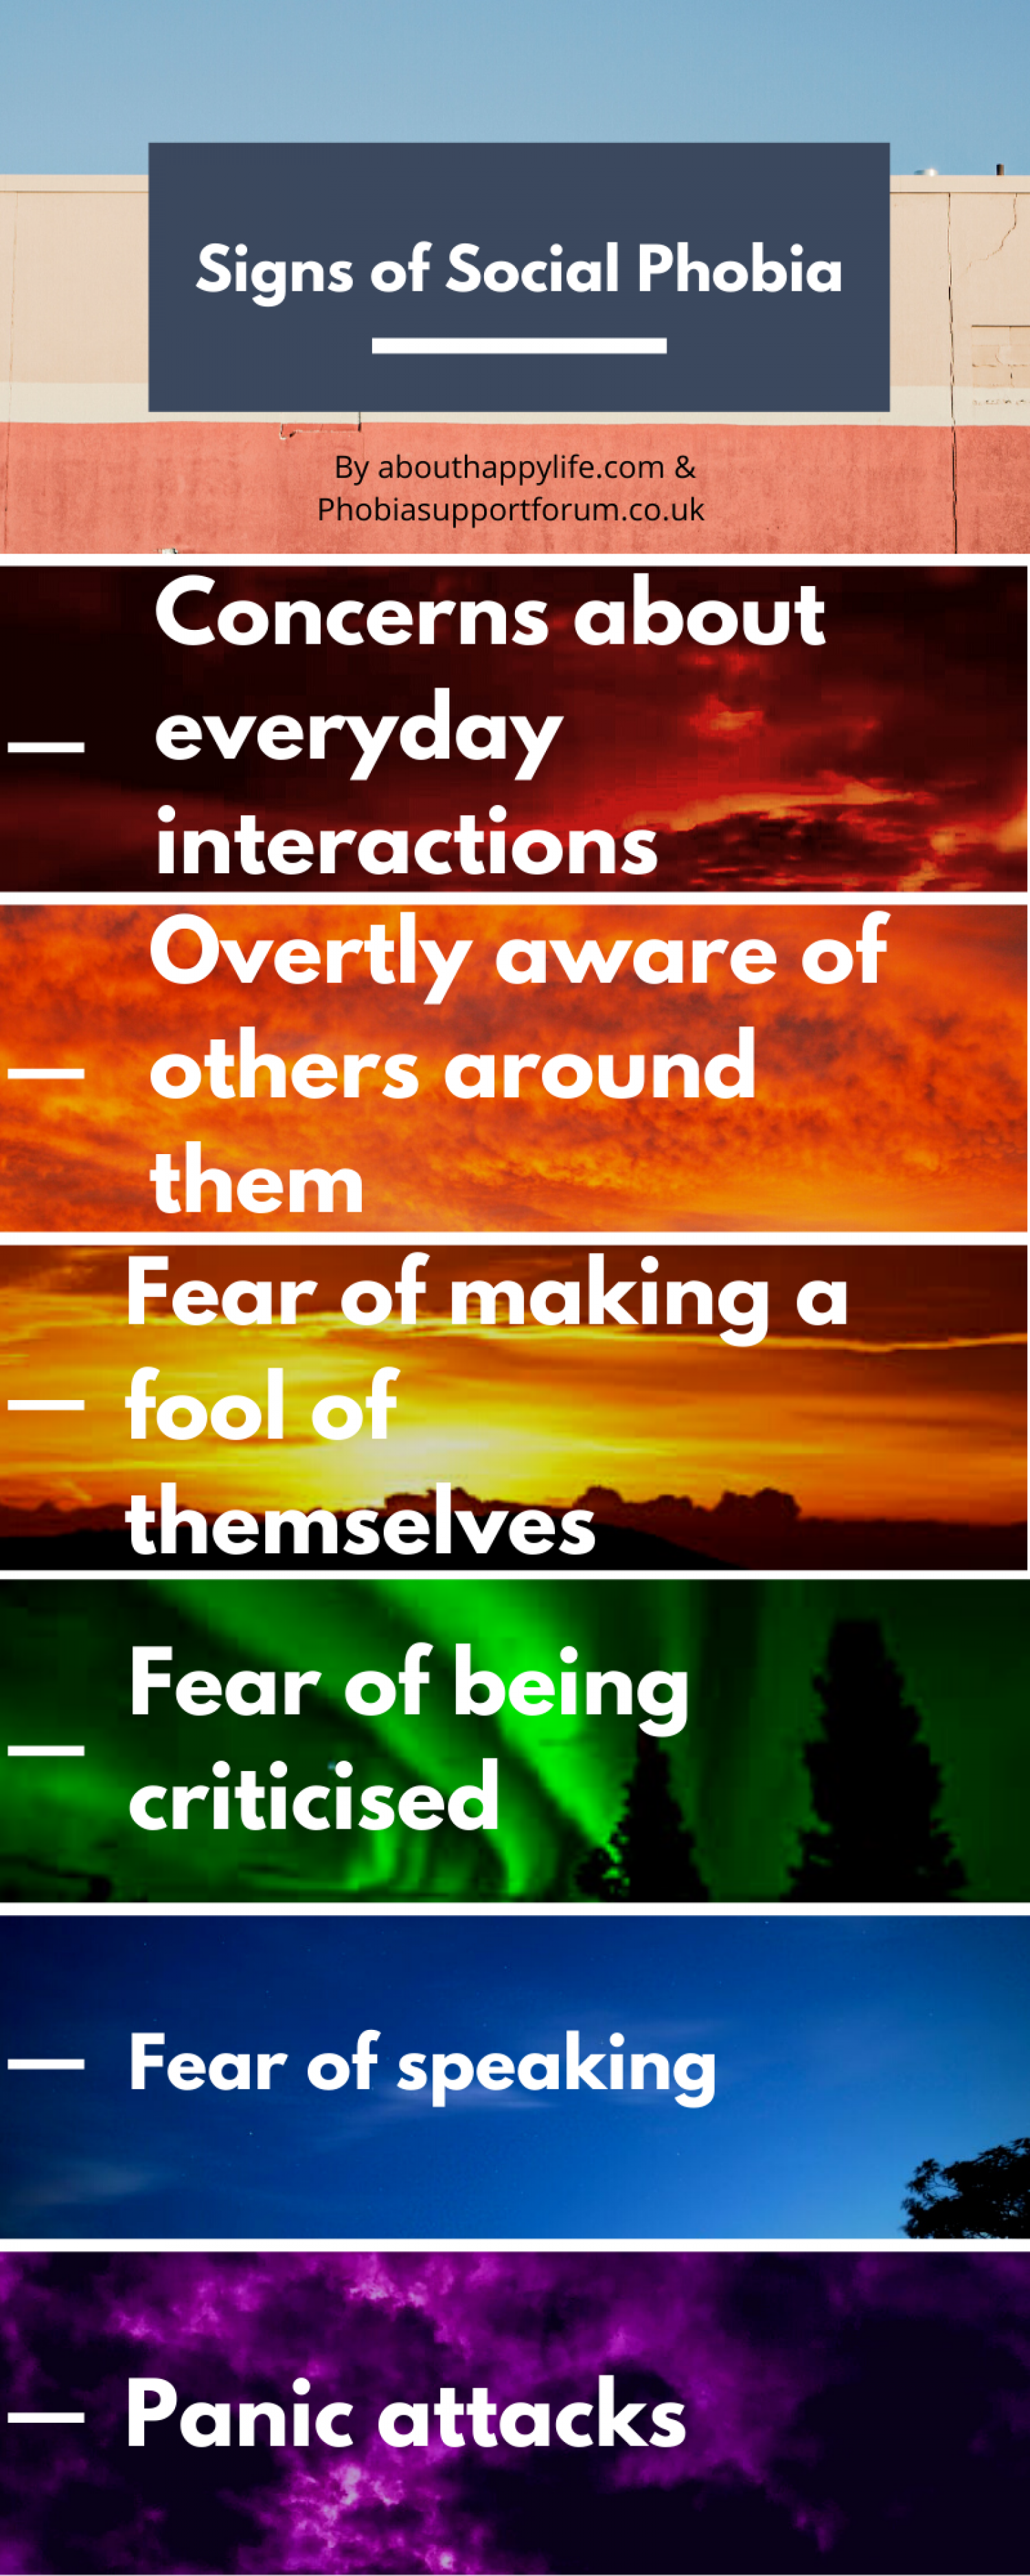 Signs of Social Phobia Infographic